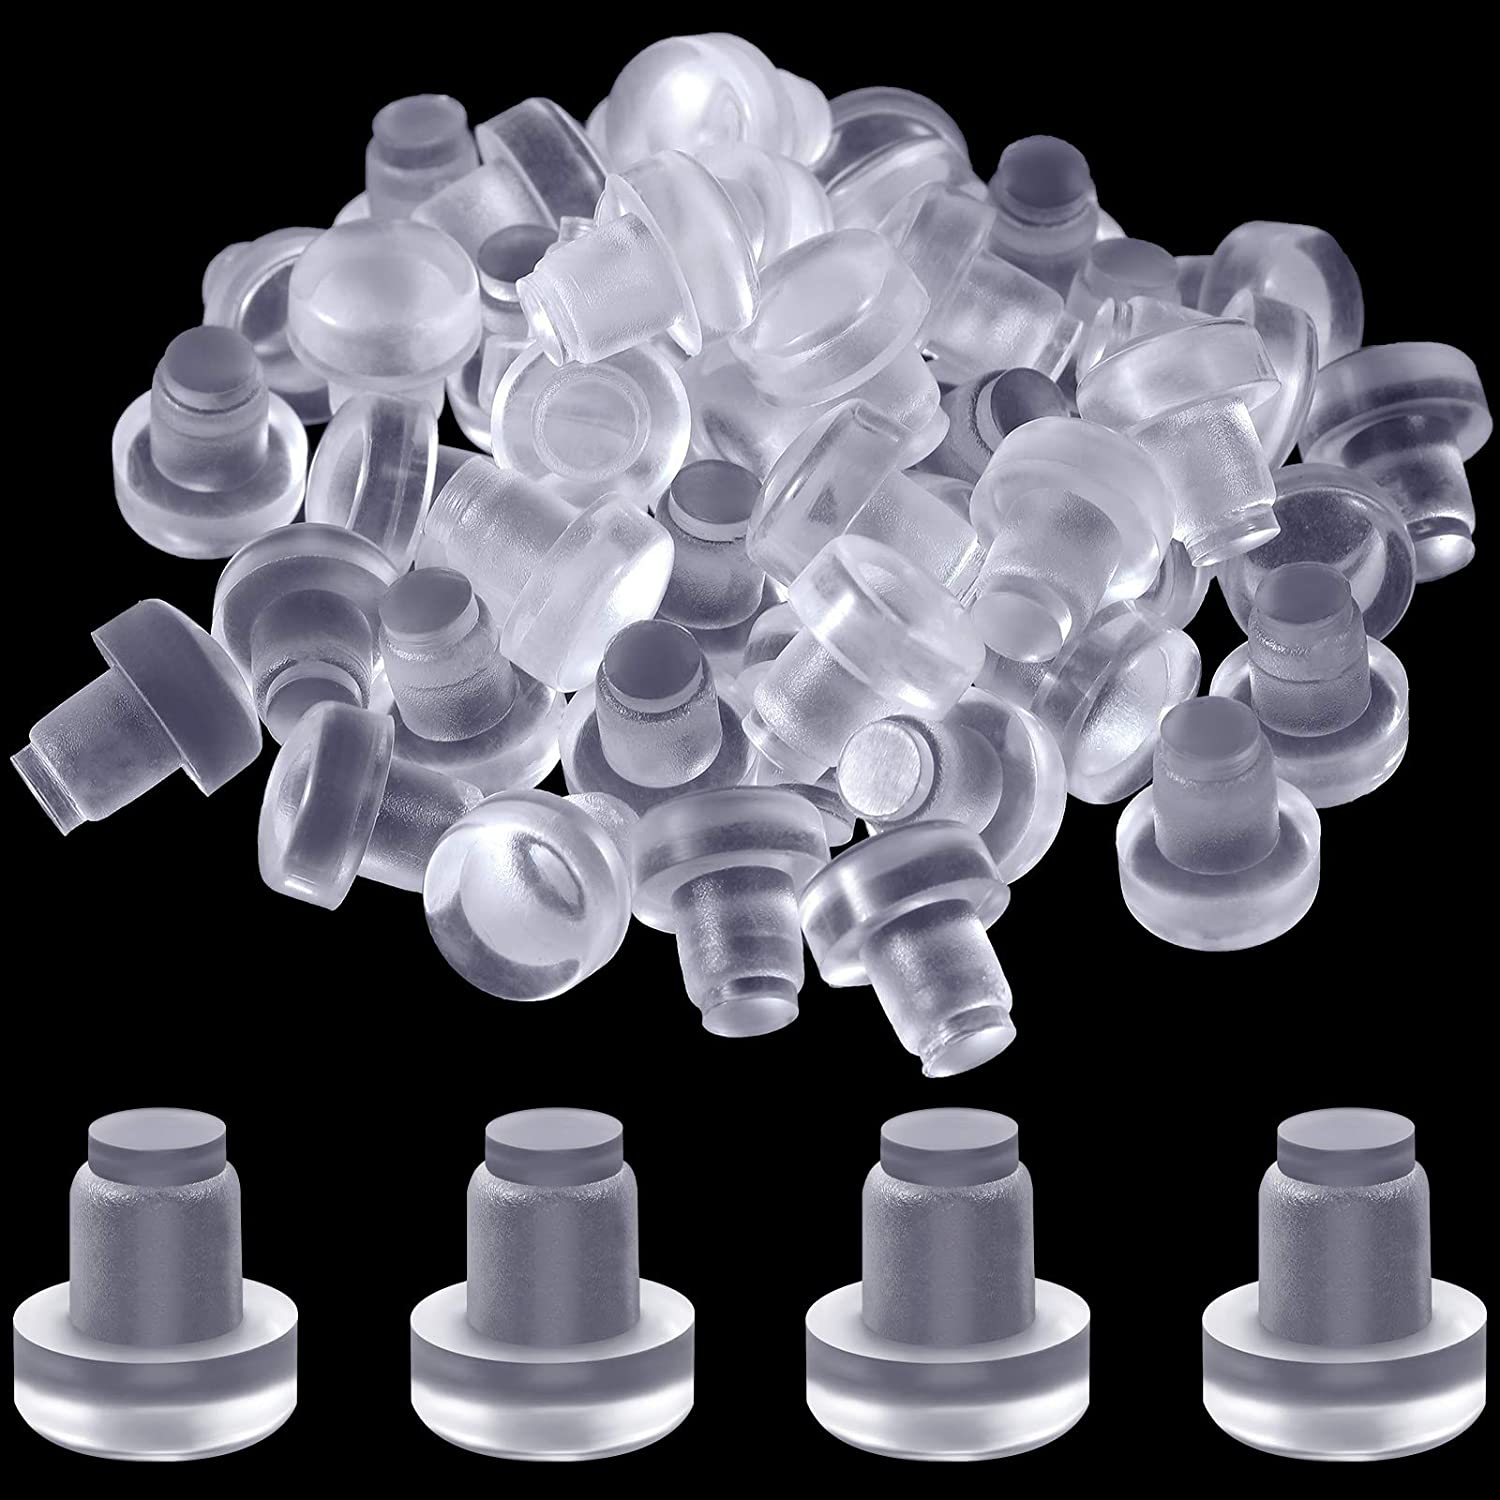 Super sale Glass Top Table Bumpers with Stem Soft wholesale Grippers Rubber Cle Clear